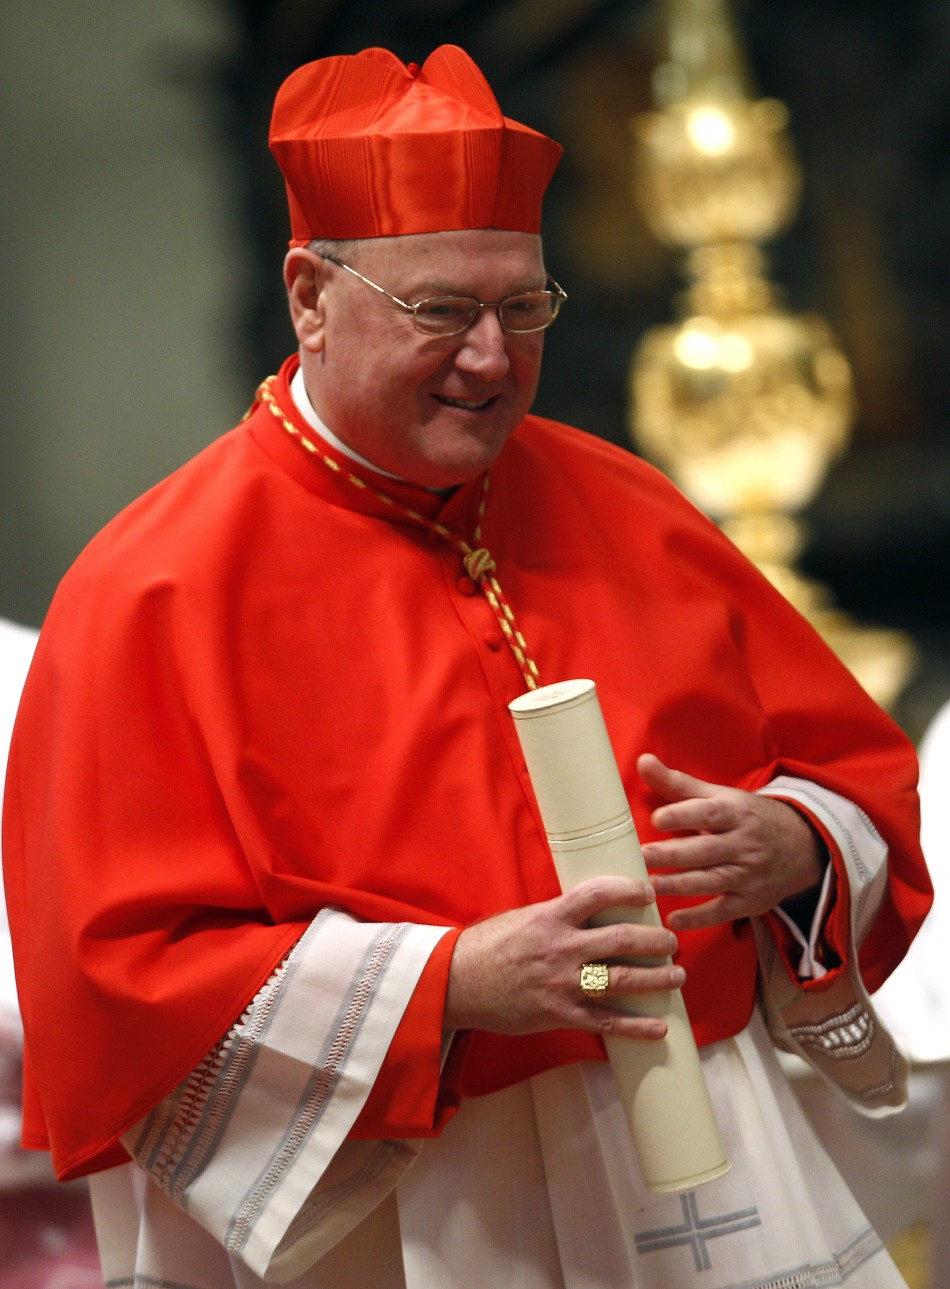 235016-new-cardinal-timothy-dolan-of-the-u-s-with-red-biretta.jpg